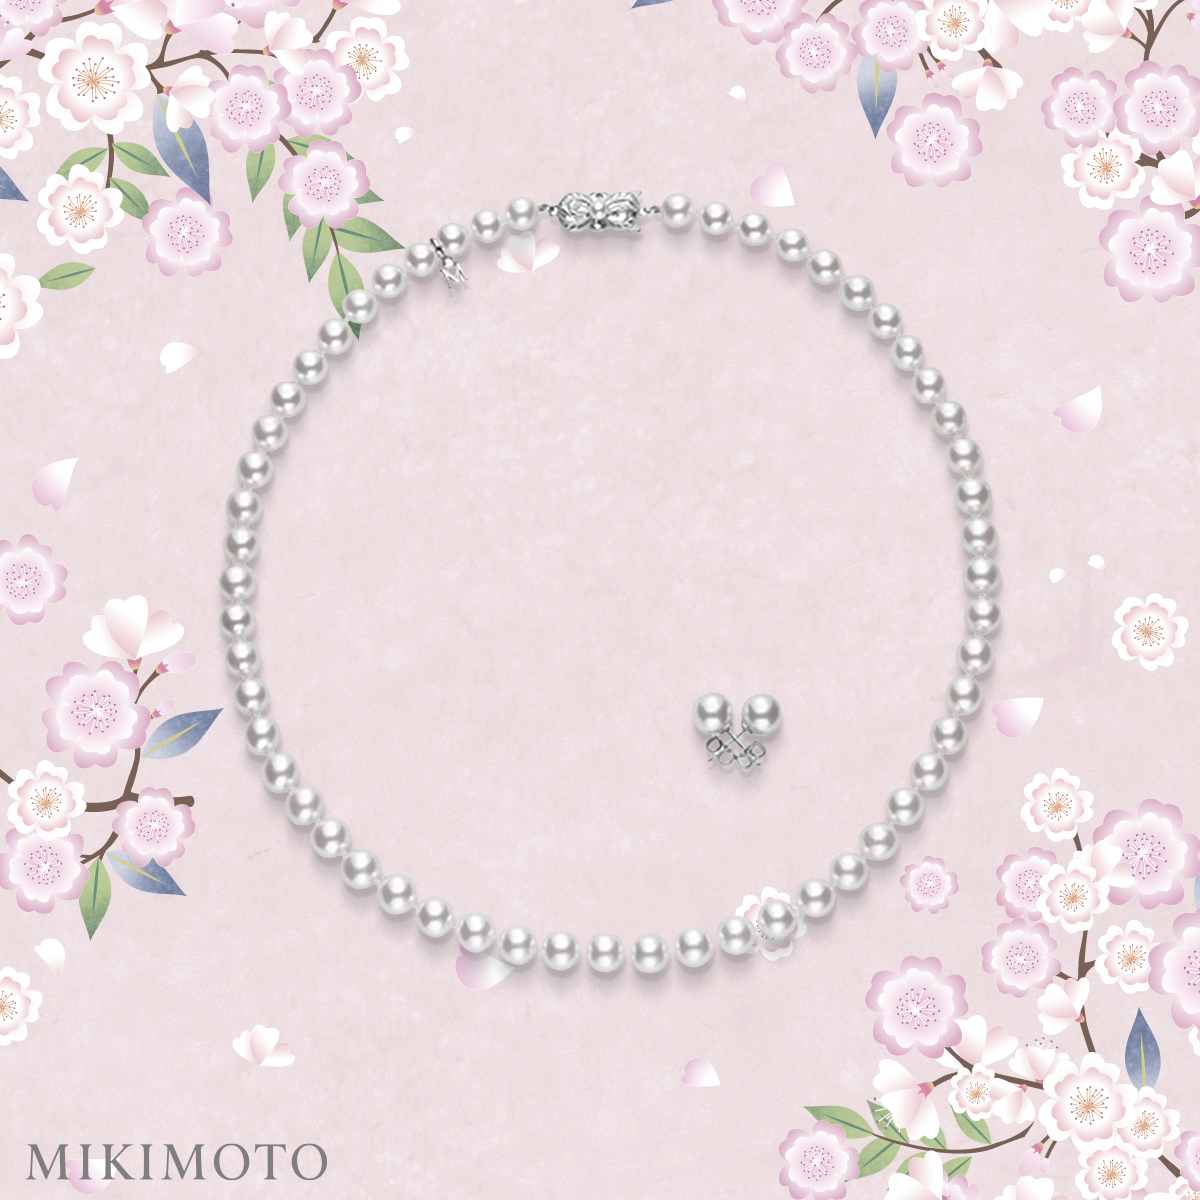 White pearl necklace on pink background with flowers